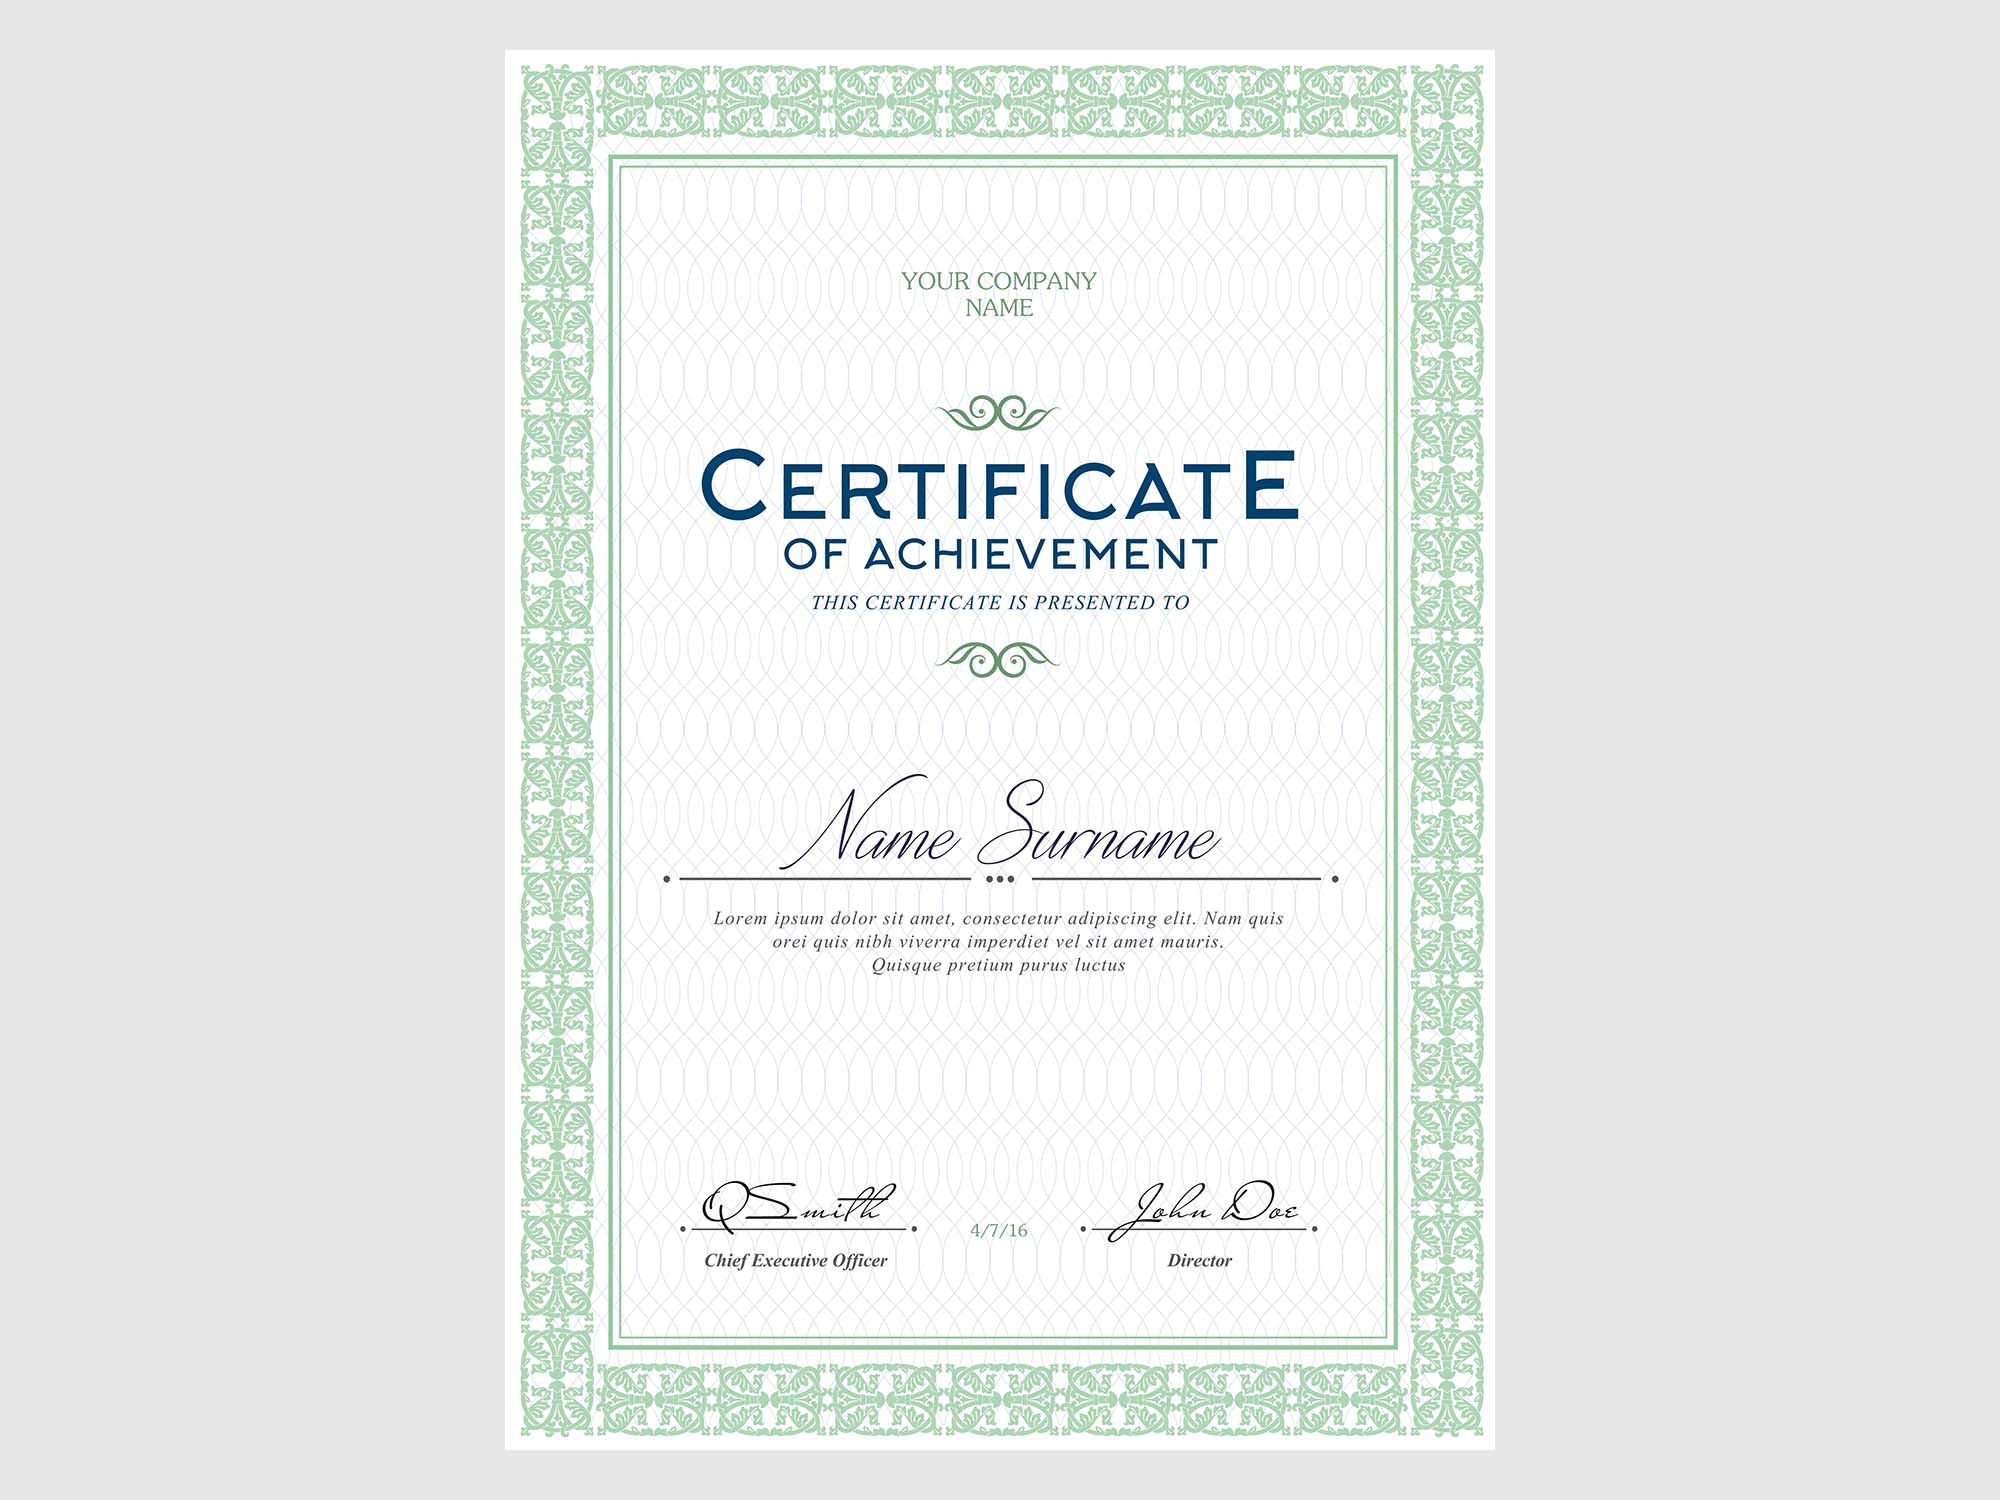 006 Rare Free Template For Certificate Concept  Certificates Online Of Completion Attendance Printable ParticipationFull